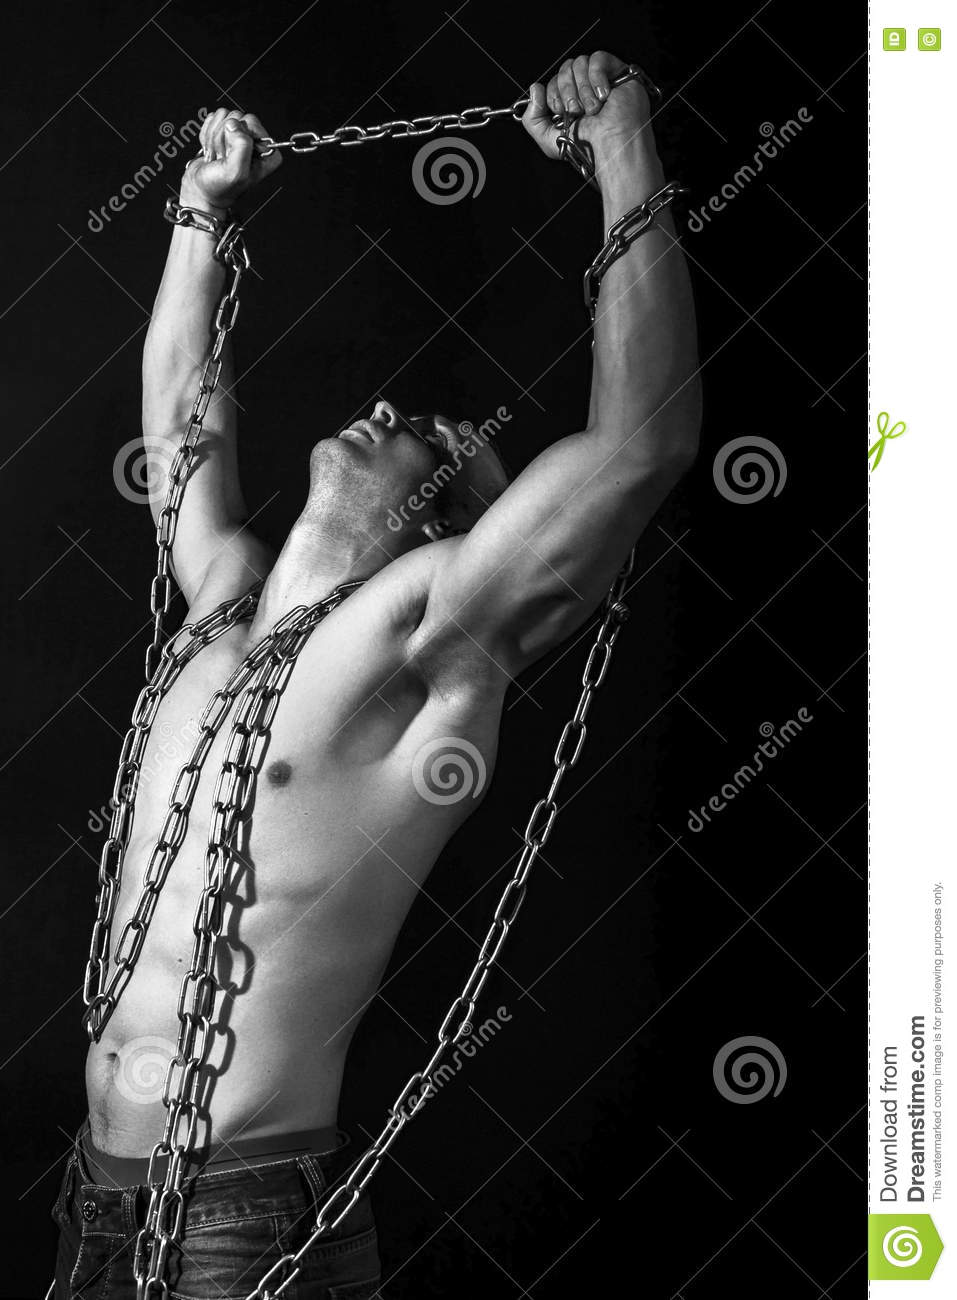 Man With Strong Muscular Arms Pulling The Chain Stock Image Image